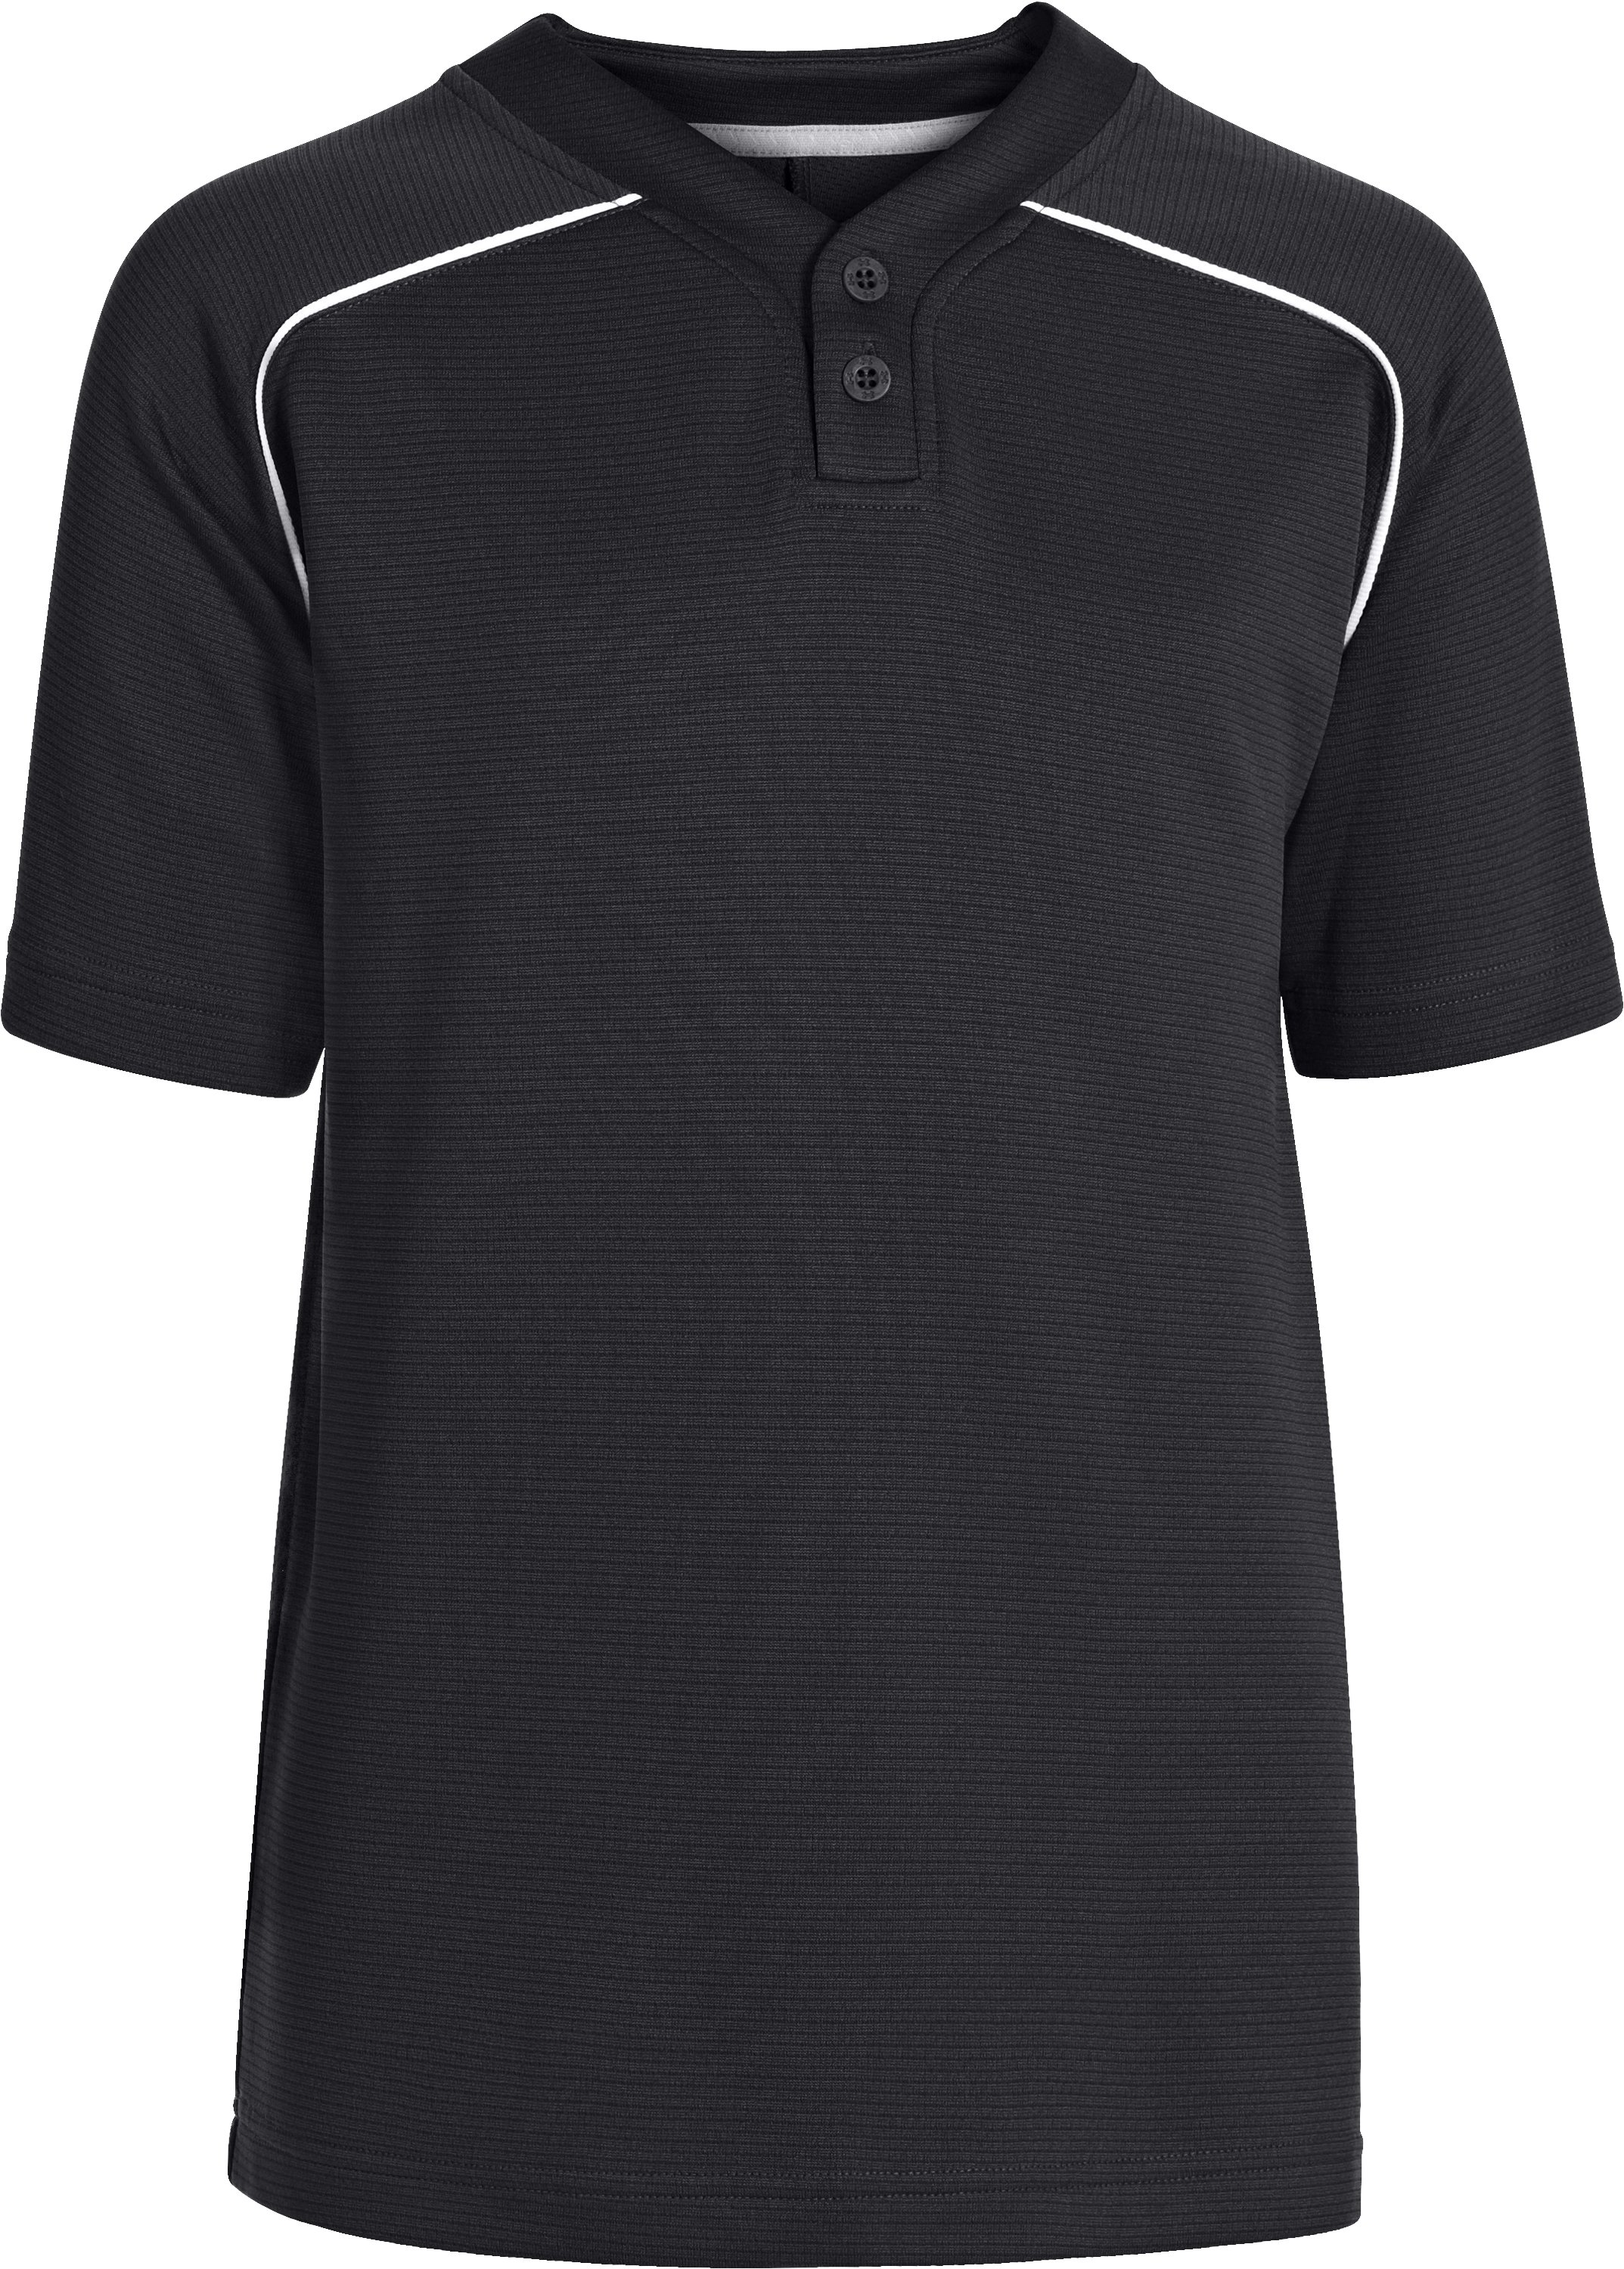 Boys' UA Landsdown II Baseball Jersey, Black